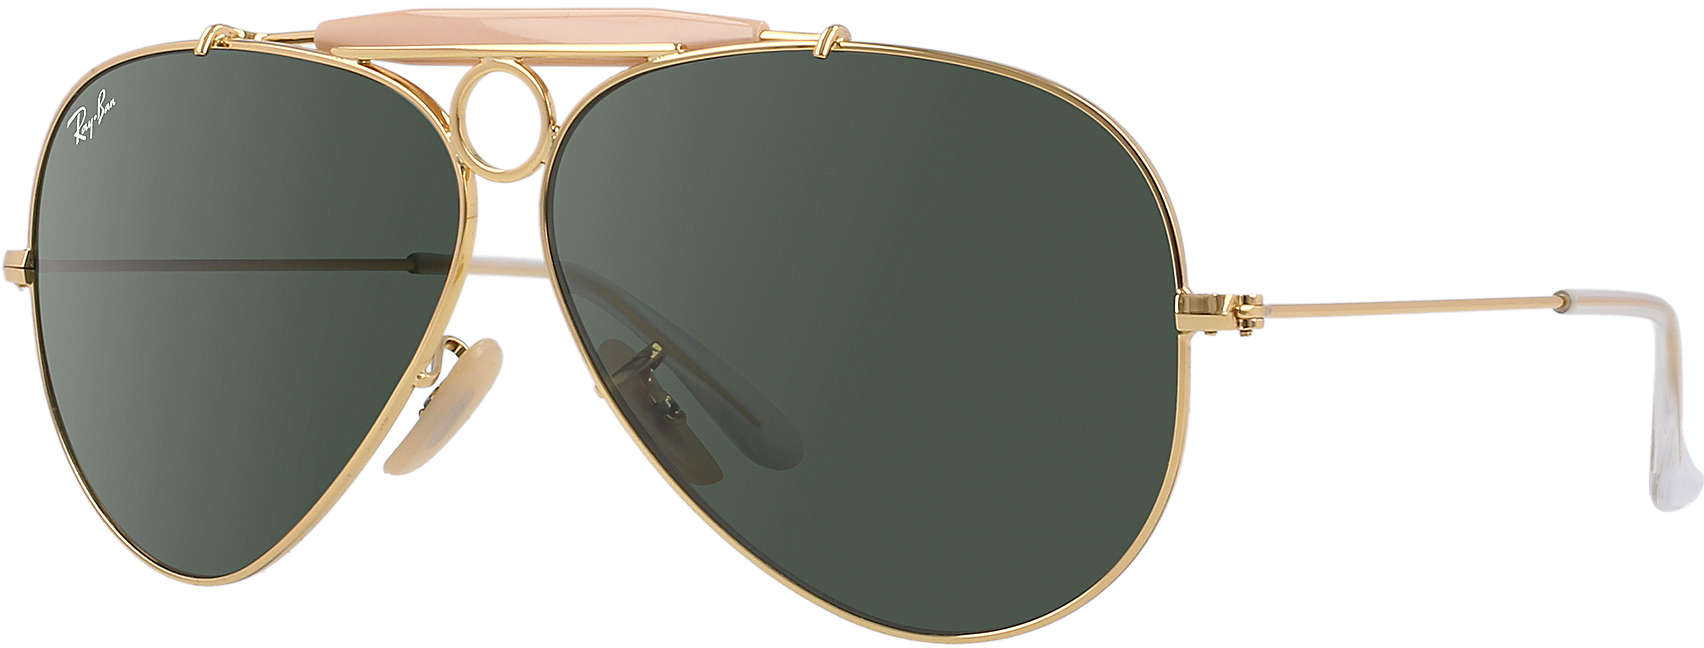 4676c2aec0588 Ray-Ban Shooter Sunglasses RB3138